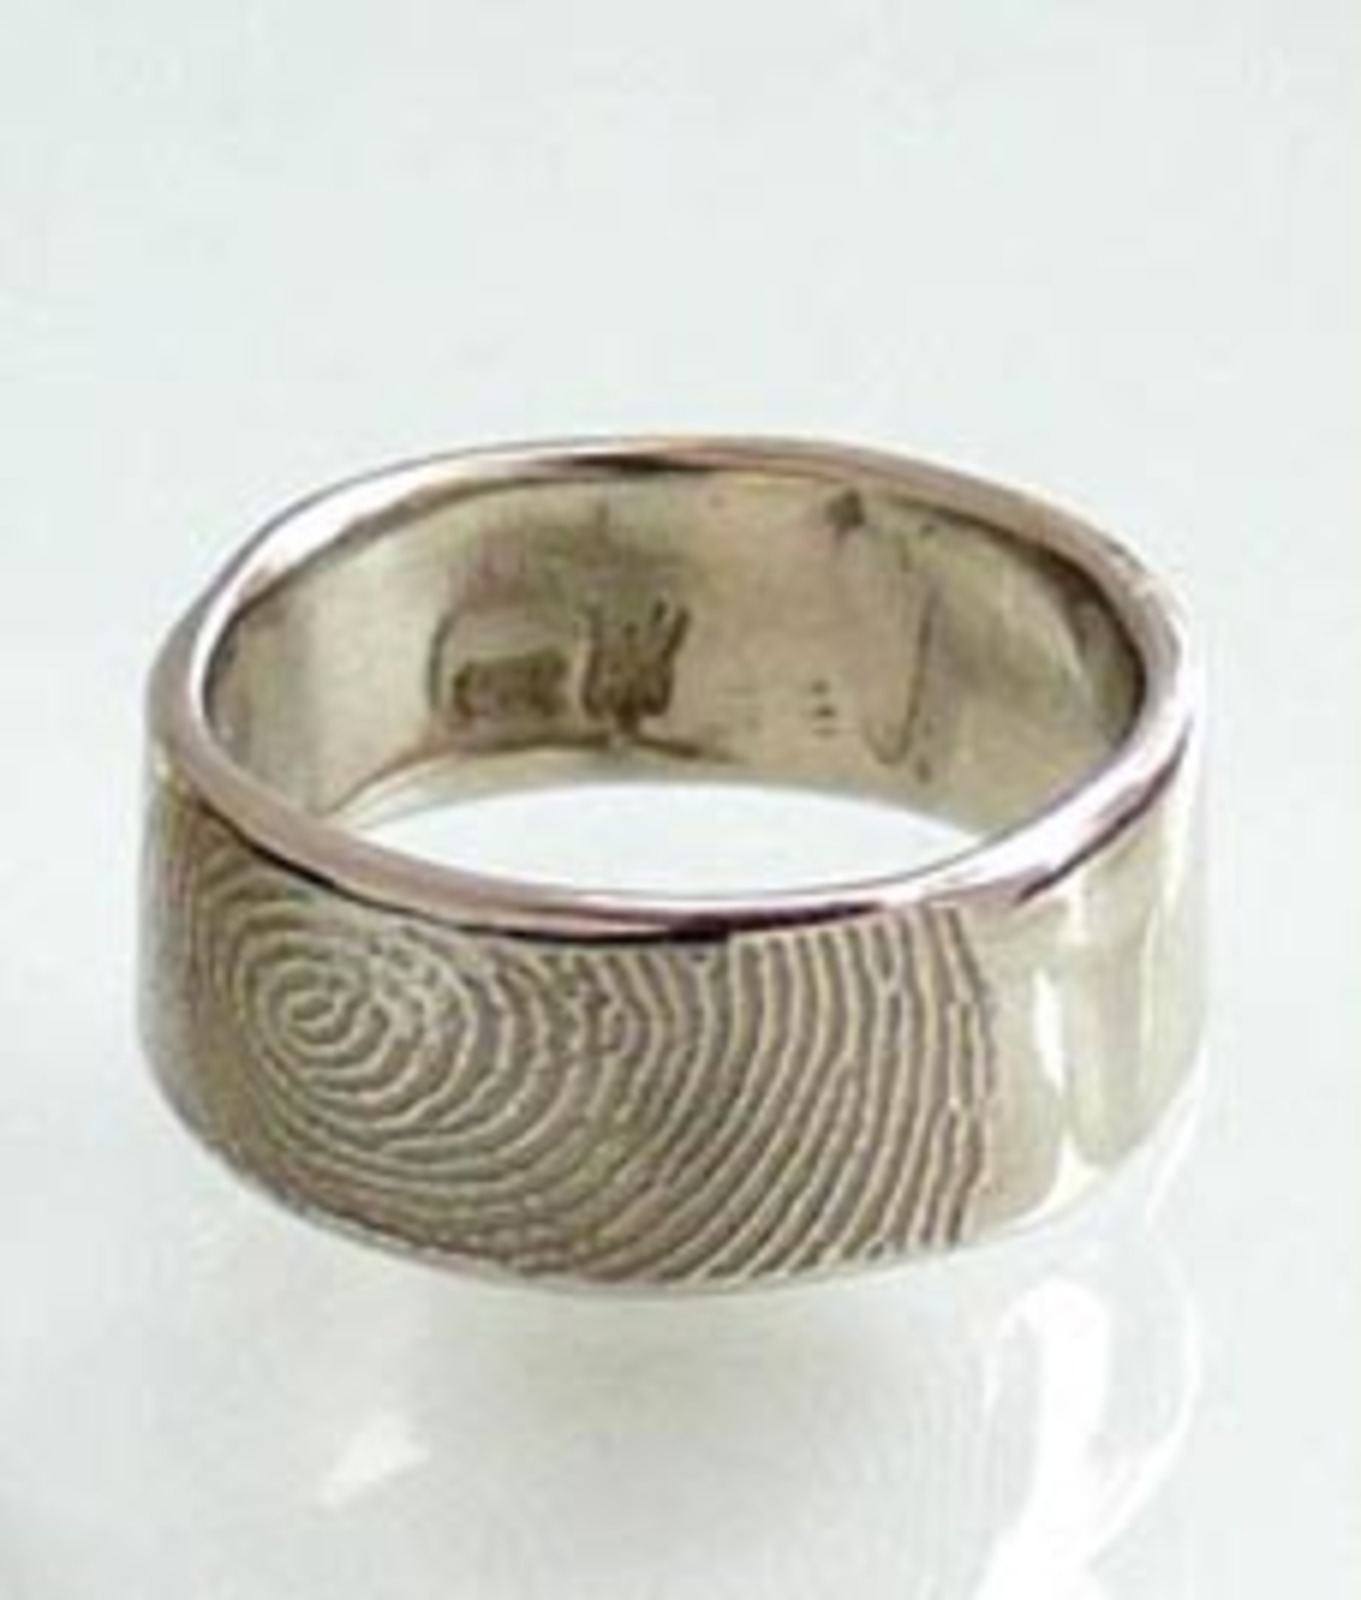 wedding accent you look rings jewellery band hemera finger print ring ladies made arsaeus designs bands sapphire